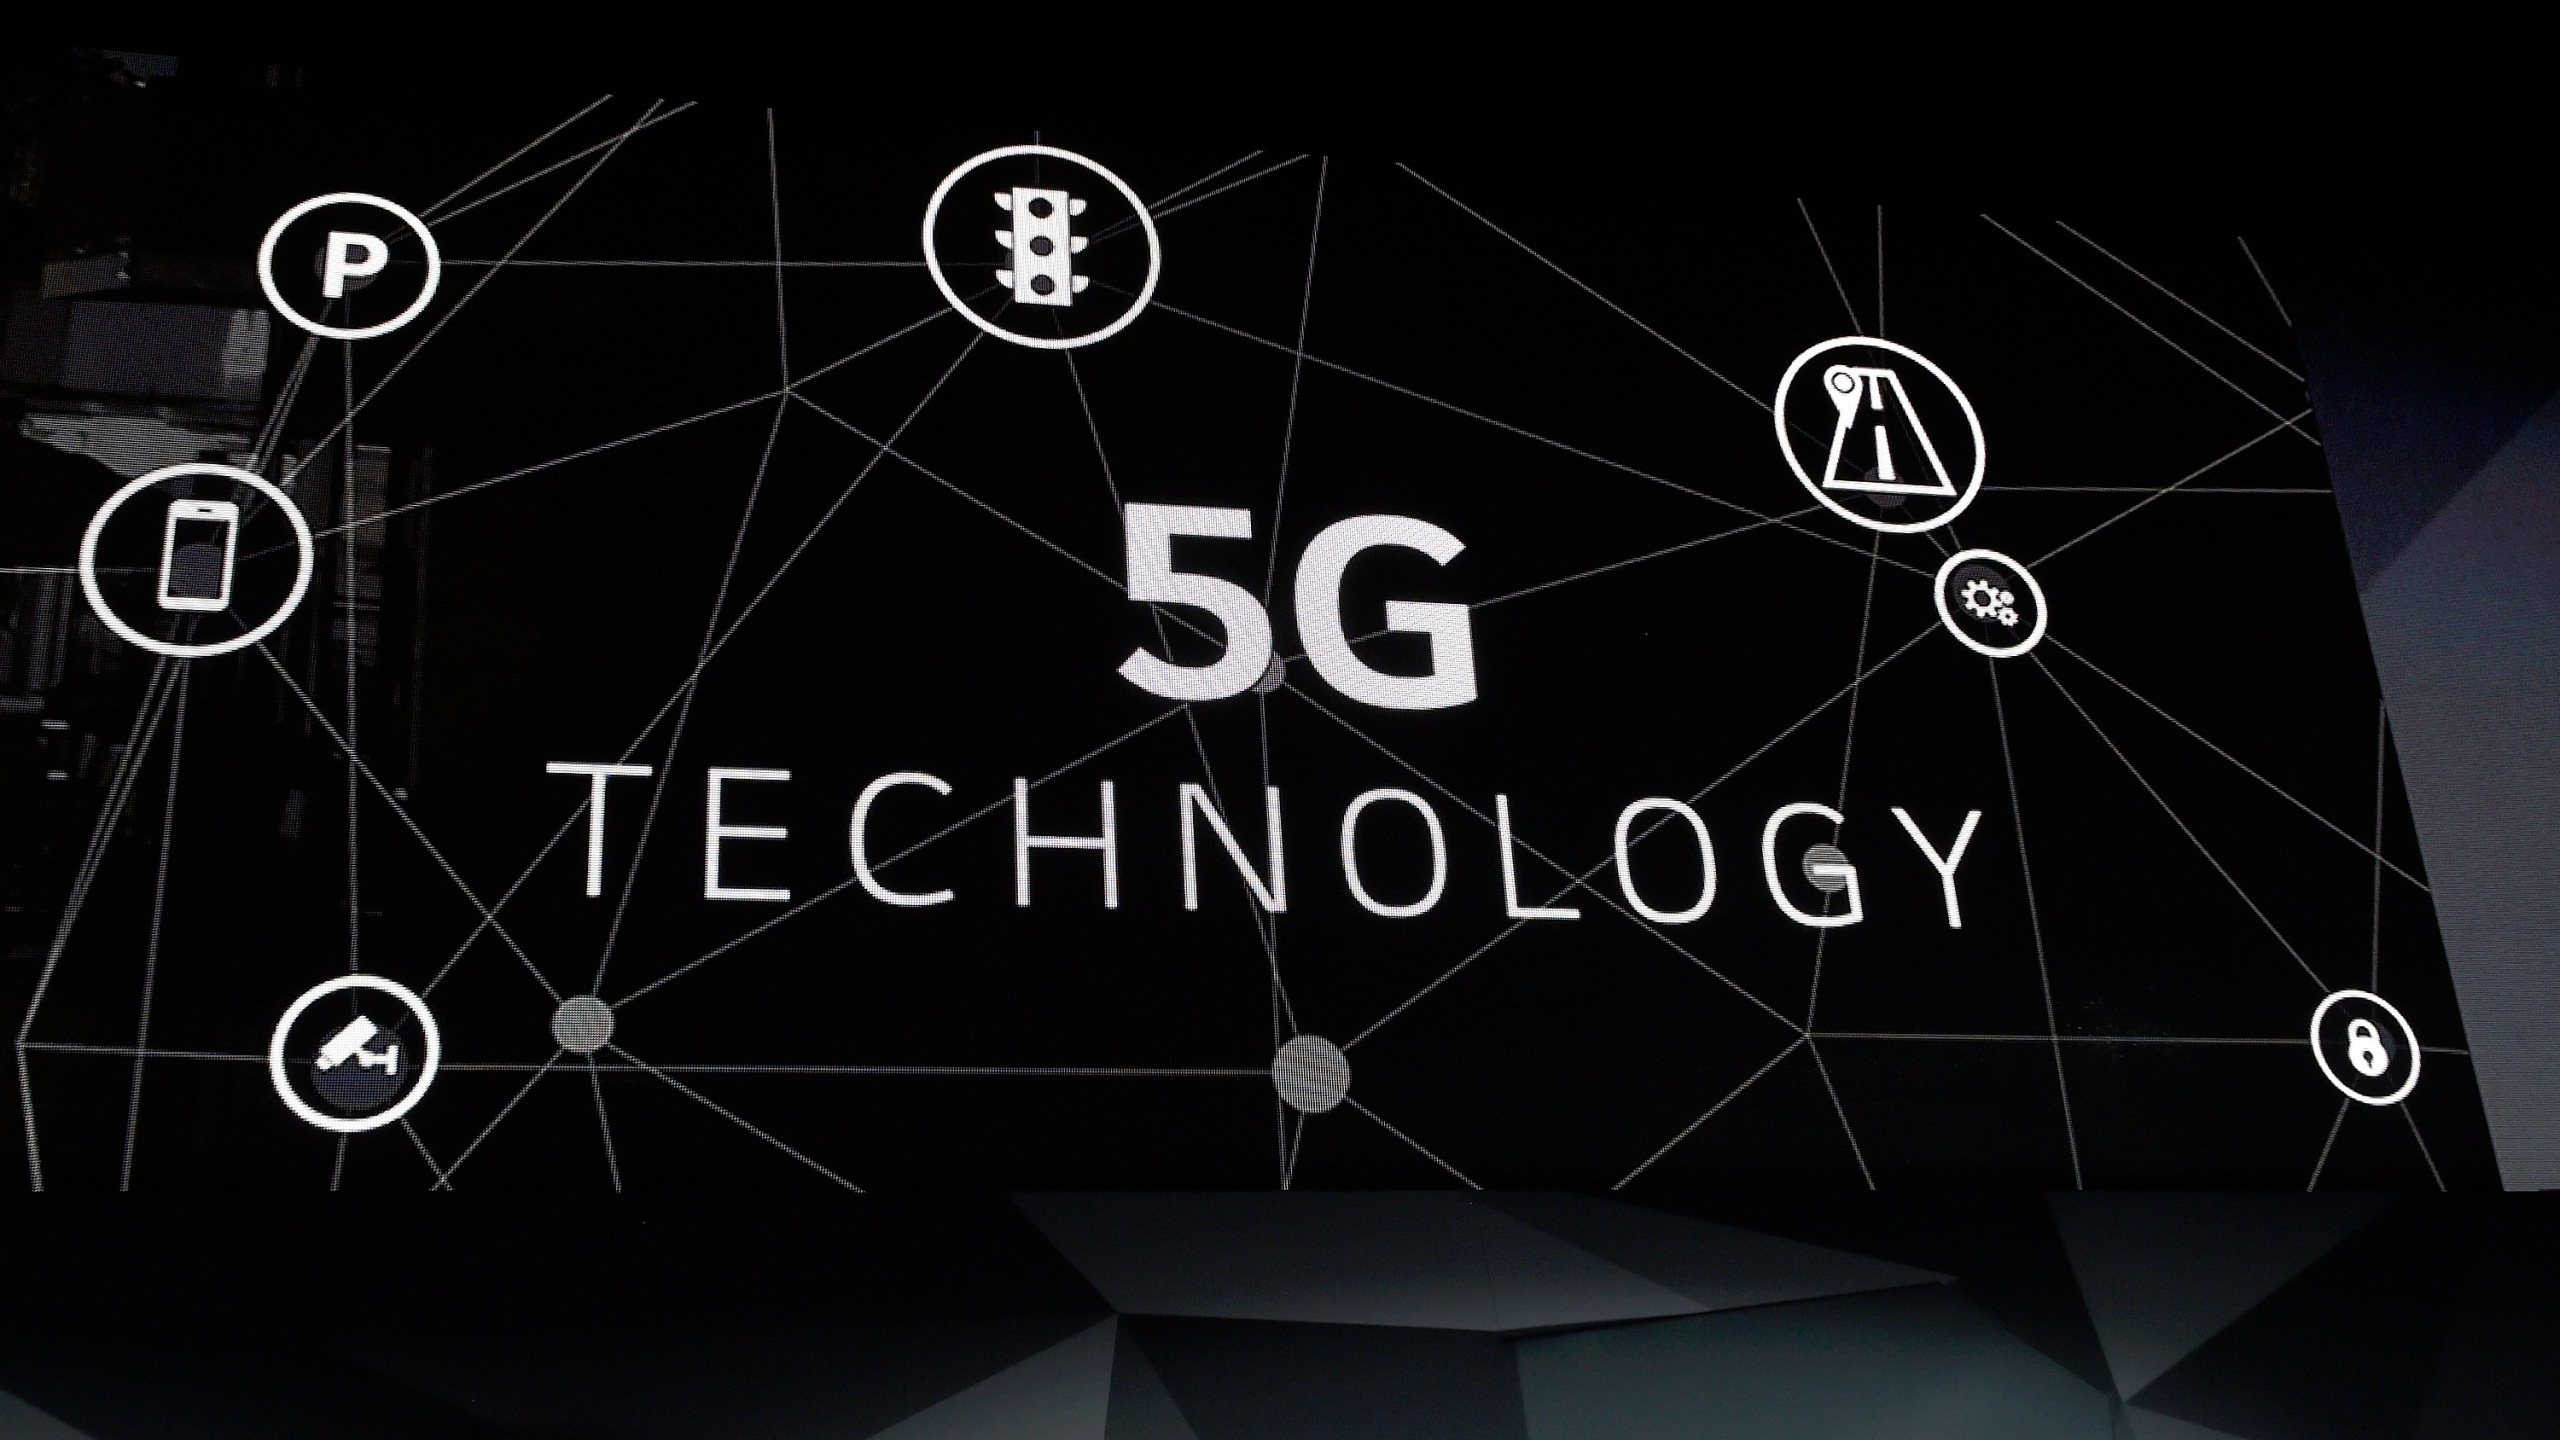 Graphic of 5G